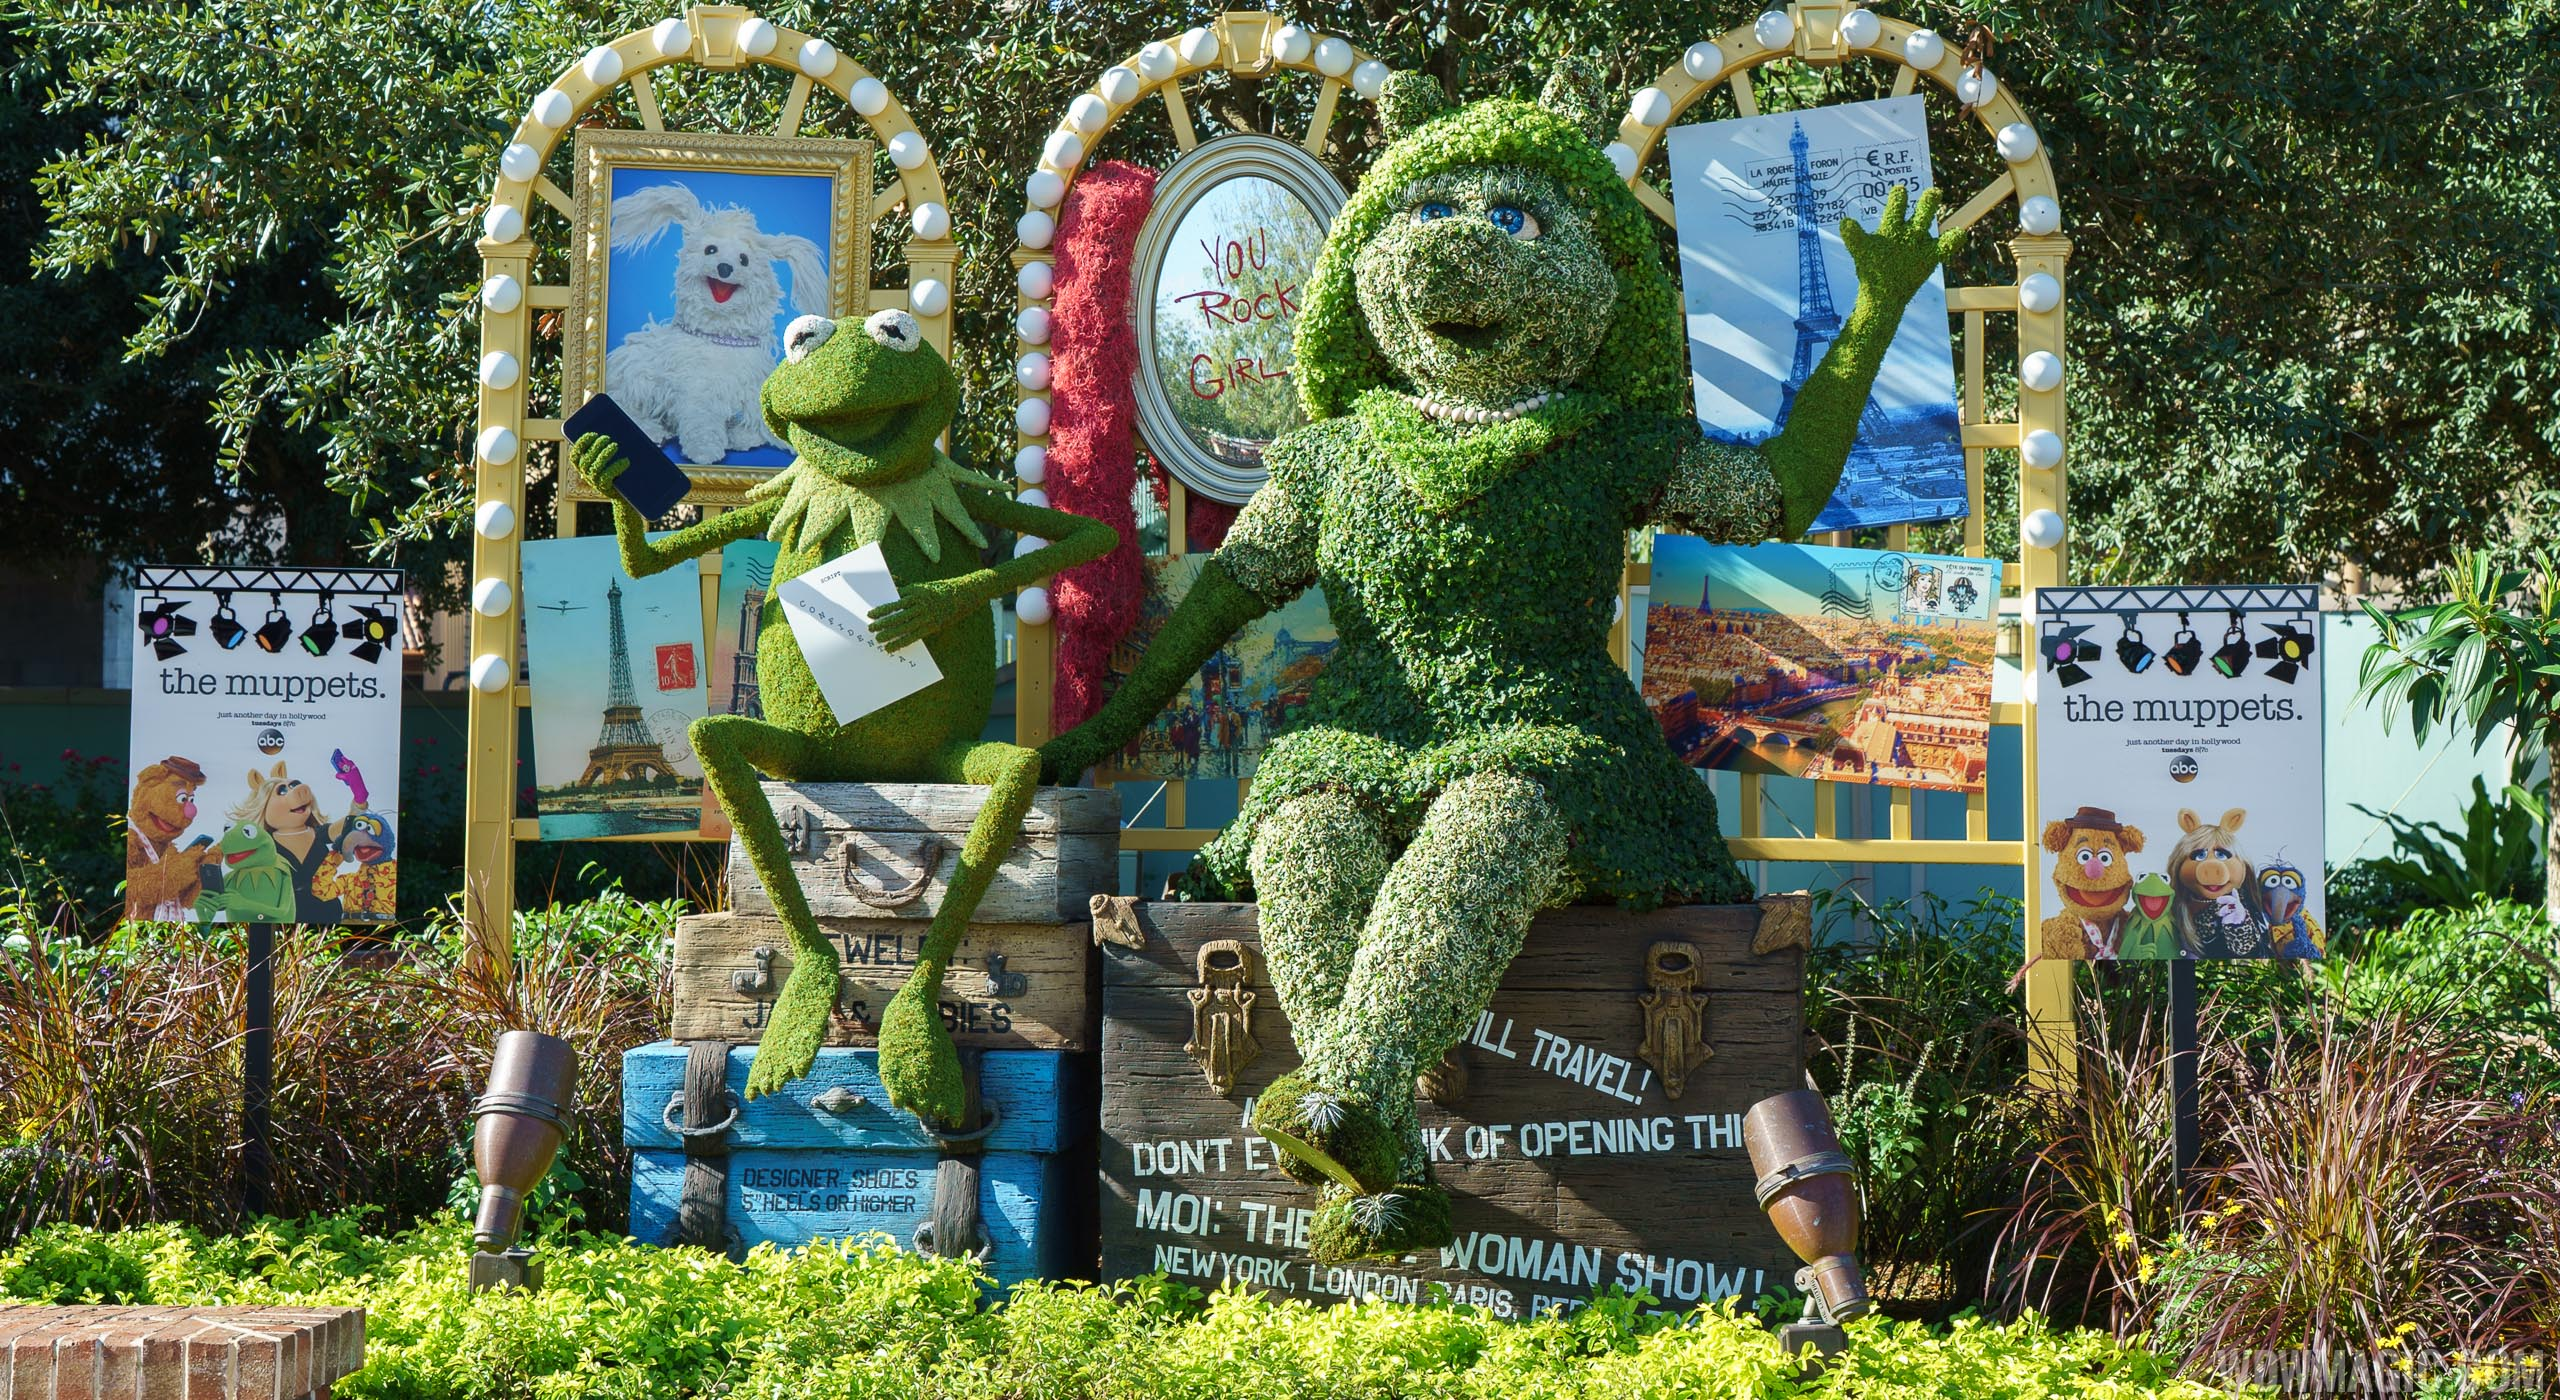 ABC The Muppets at Disney Springs